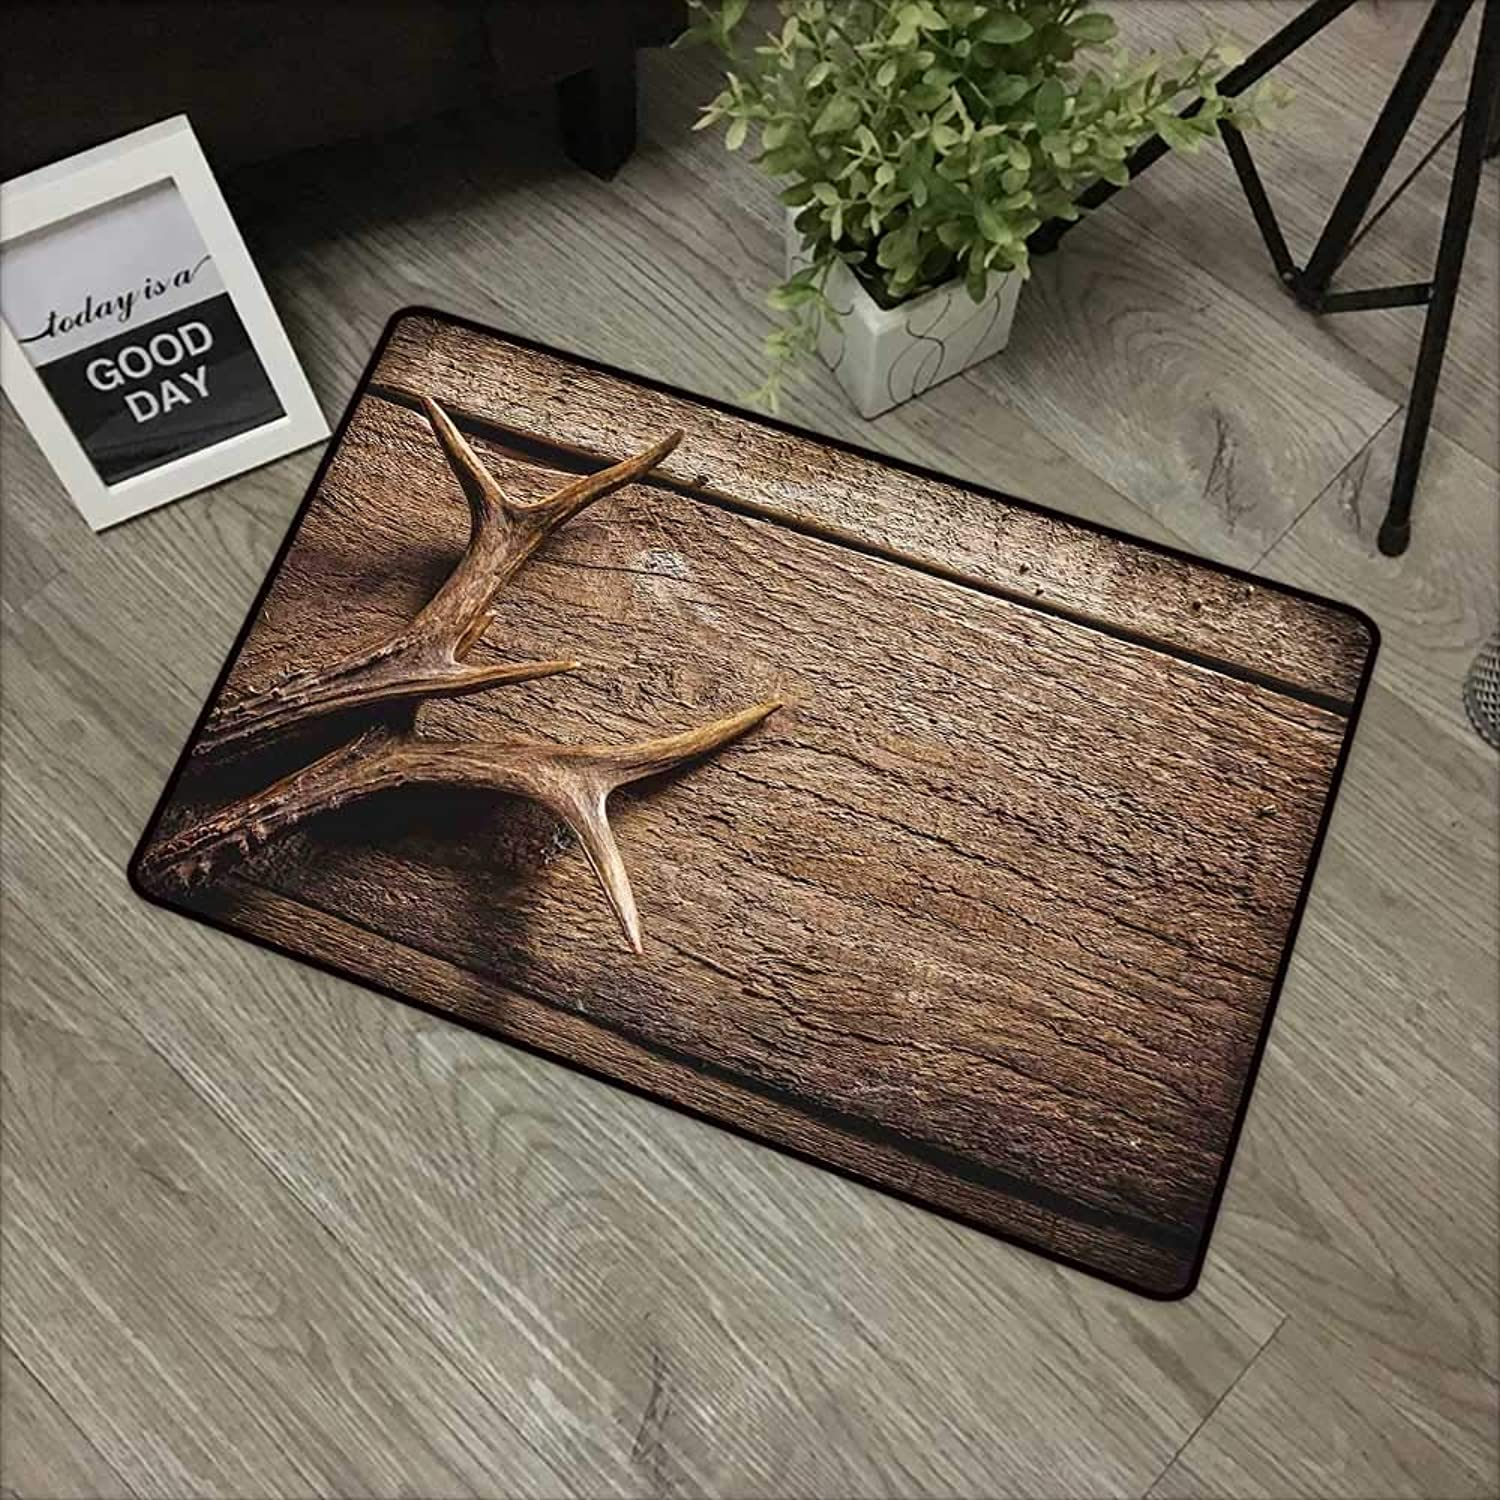 Bathroom Anti-Slip Door mat W35 x L59 INCH Antlers Decor,Deer Antlers on Wood Table Rustic Texture Surface Hunting Season Decorating Non-Slip, with Non-Slip Backing,Non-Slip Door Mat Carpet